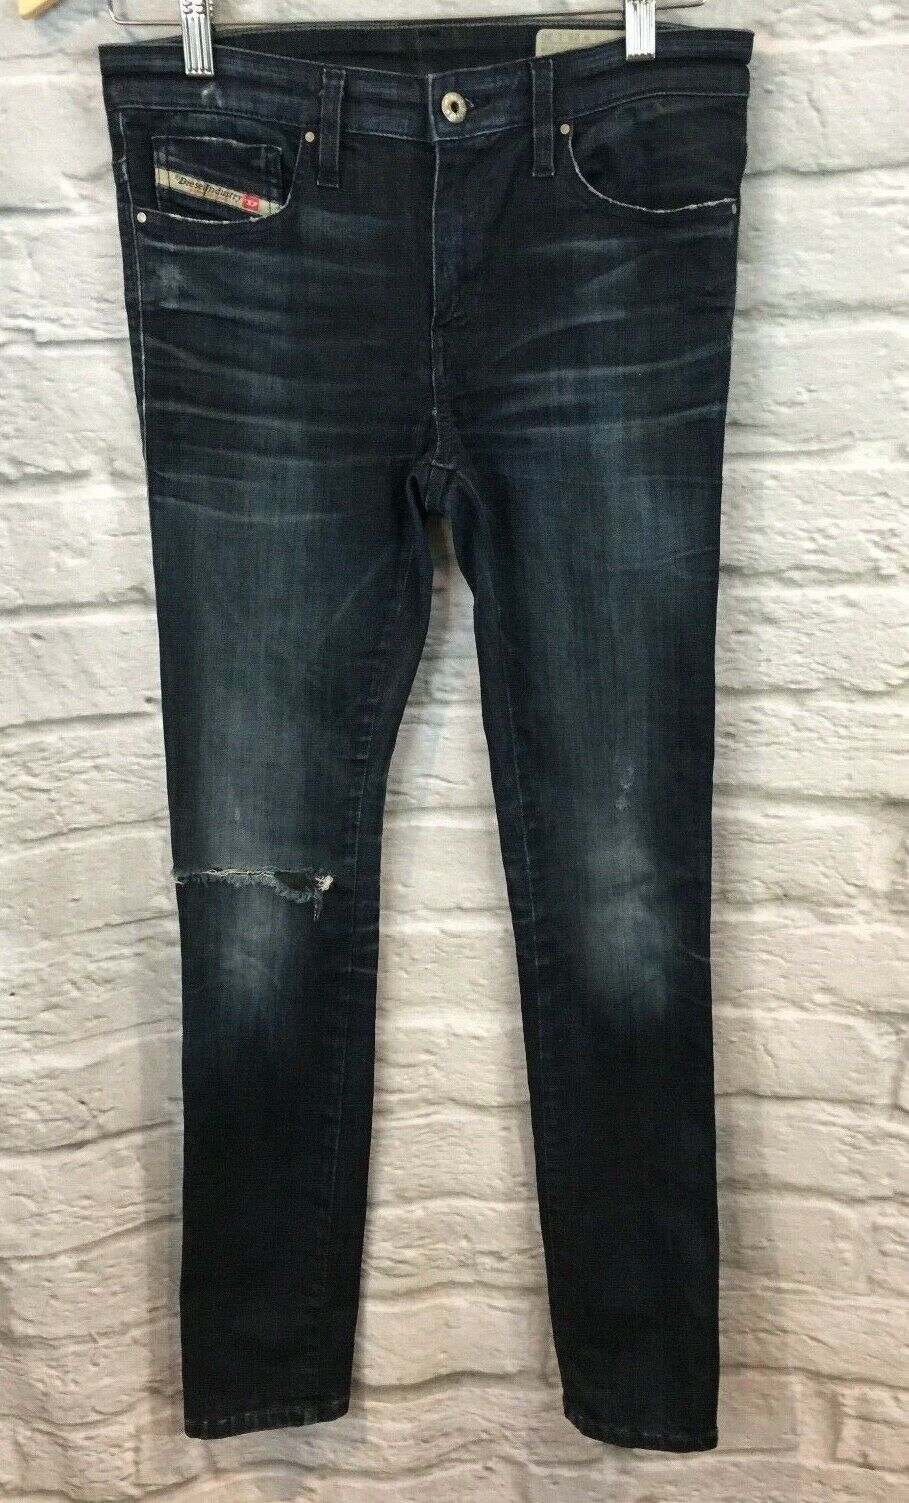 Diesel Women's Skinzee Super Slim Skinny Distressed Destroyed Jeans Sz 28 30